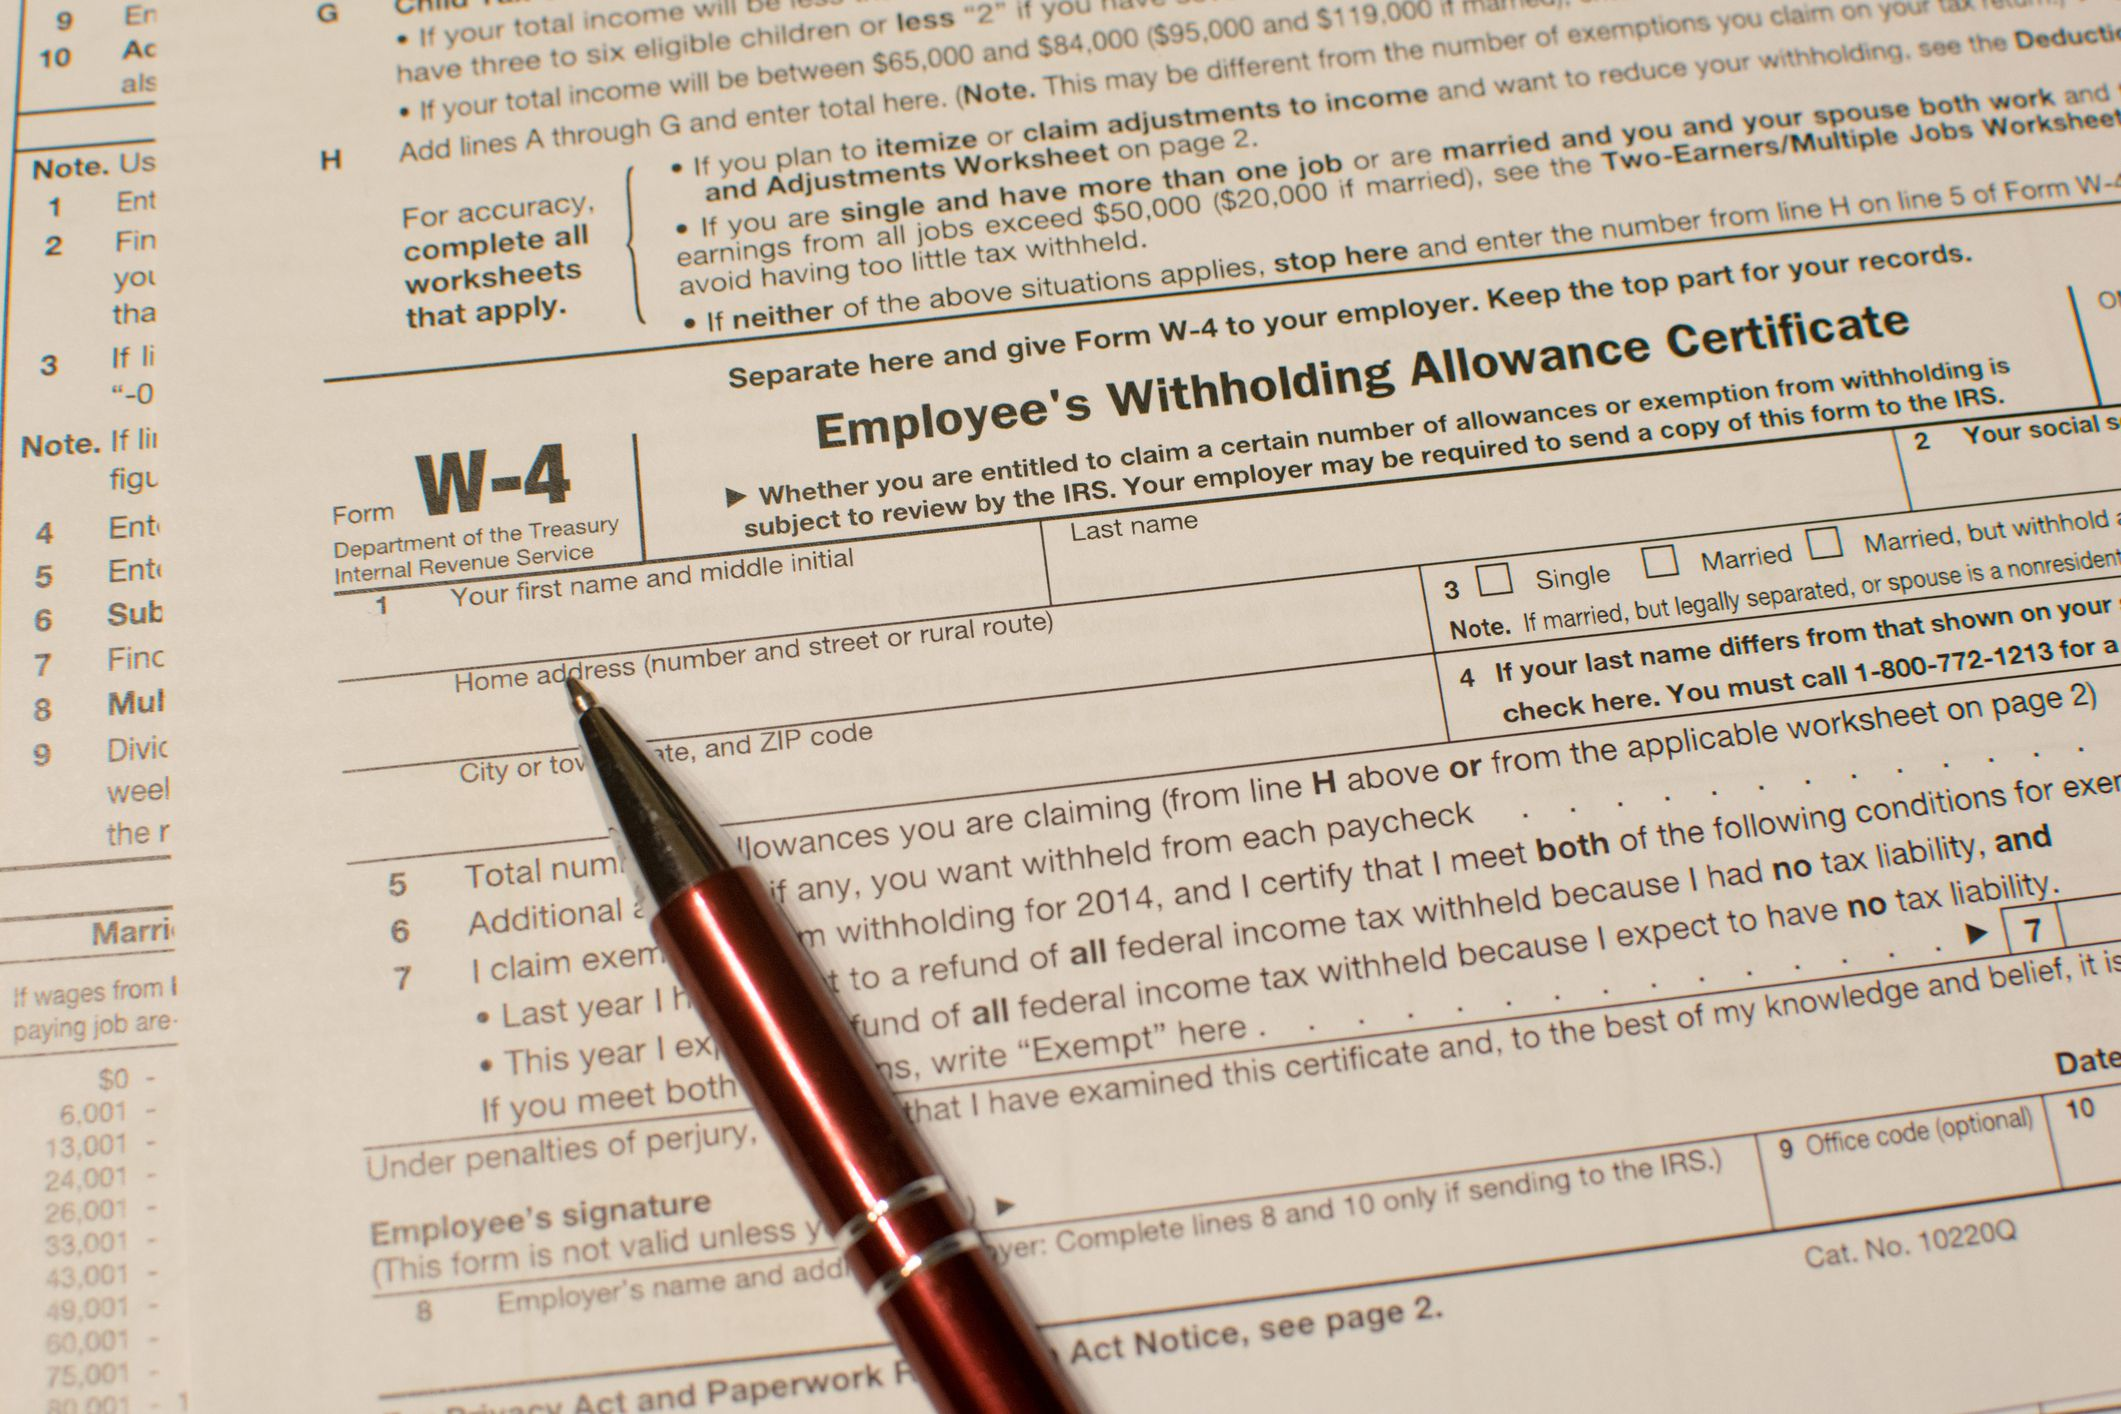 How to Calculate Your Tax Withholding on Form W-4